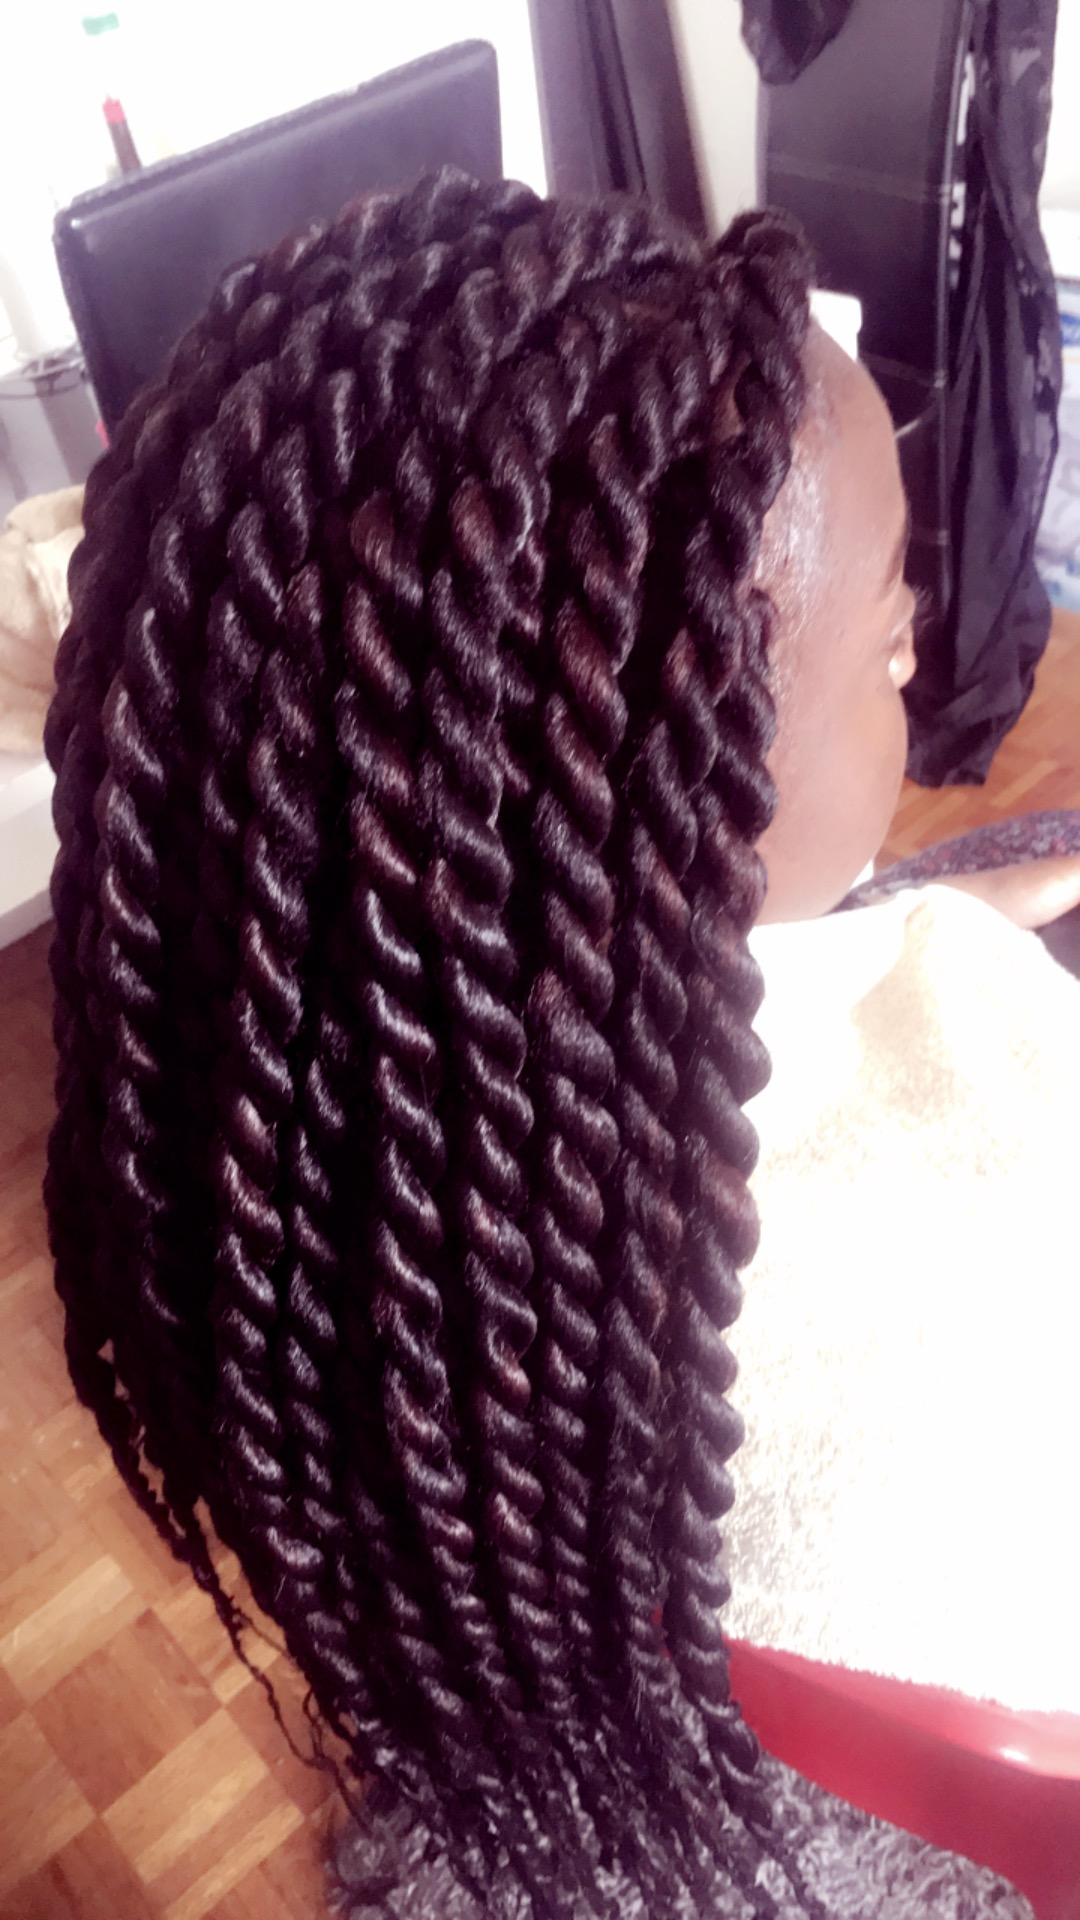 salon de coiffure afro tresse tresses box braids crochet braids vanilles tissages paris 75 77 78 91 92 93 94 95 TULIZCVD